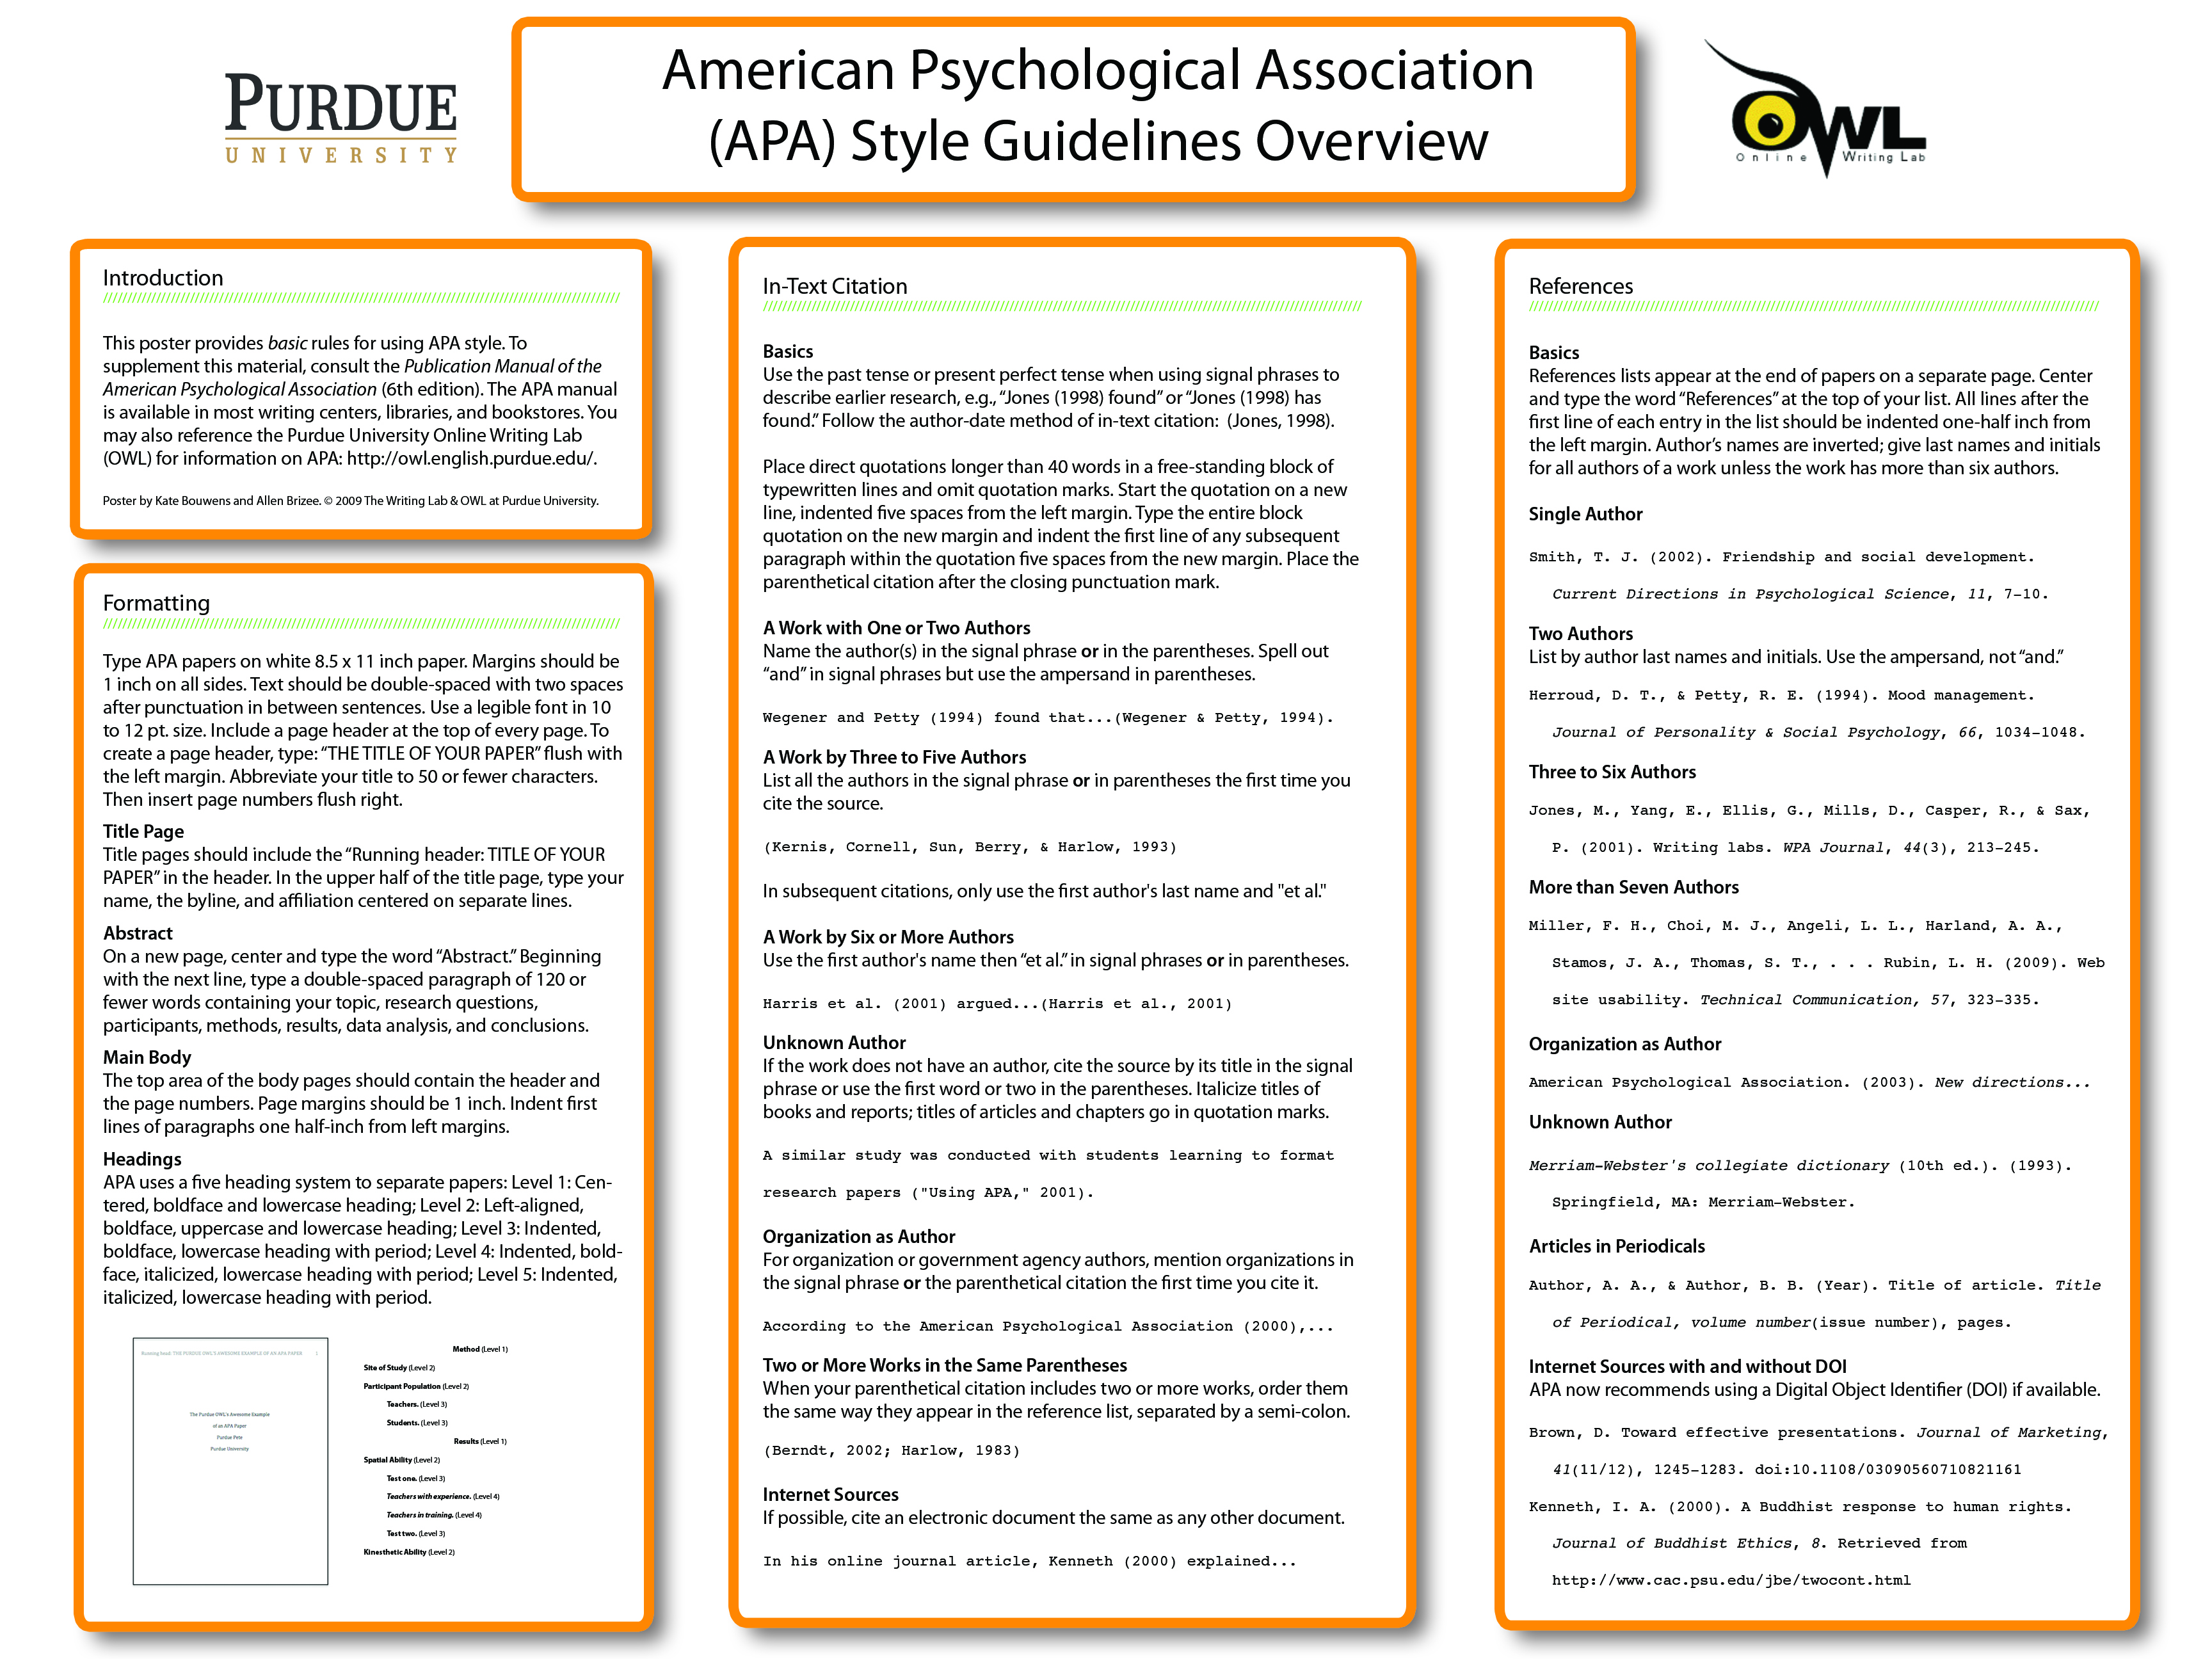 002 Apa Research Paper Format Purdue Owl Staggering Full